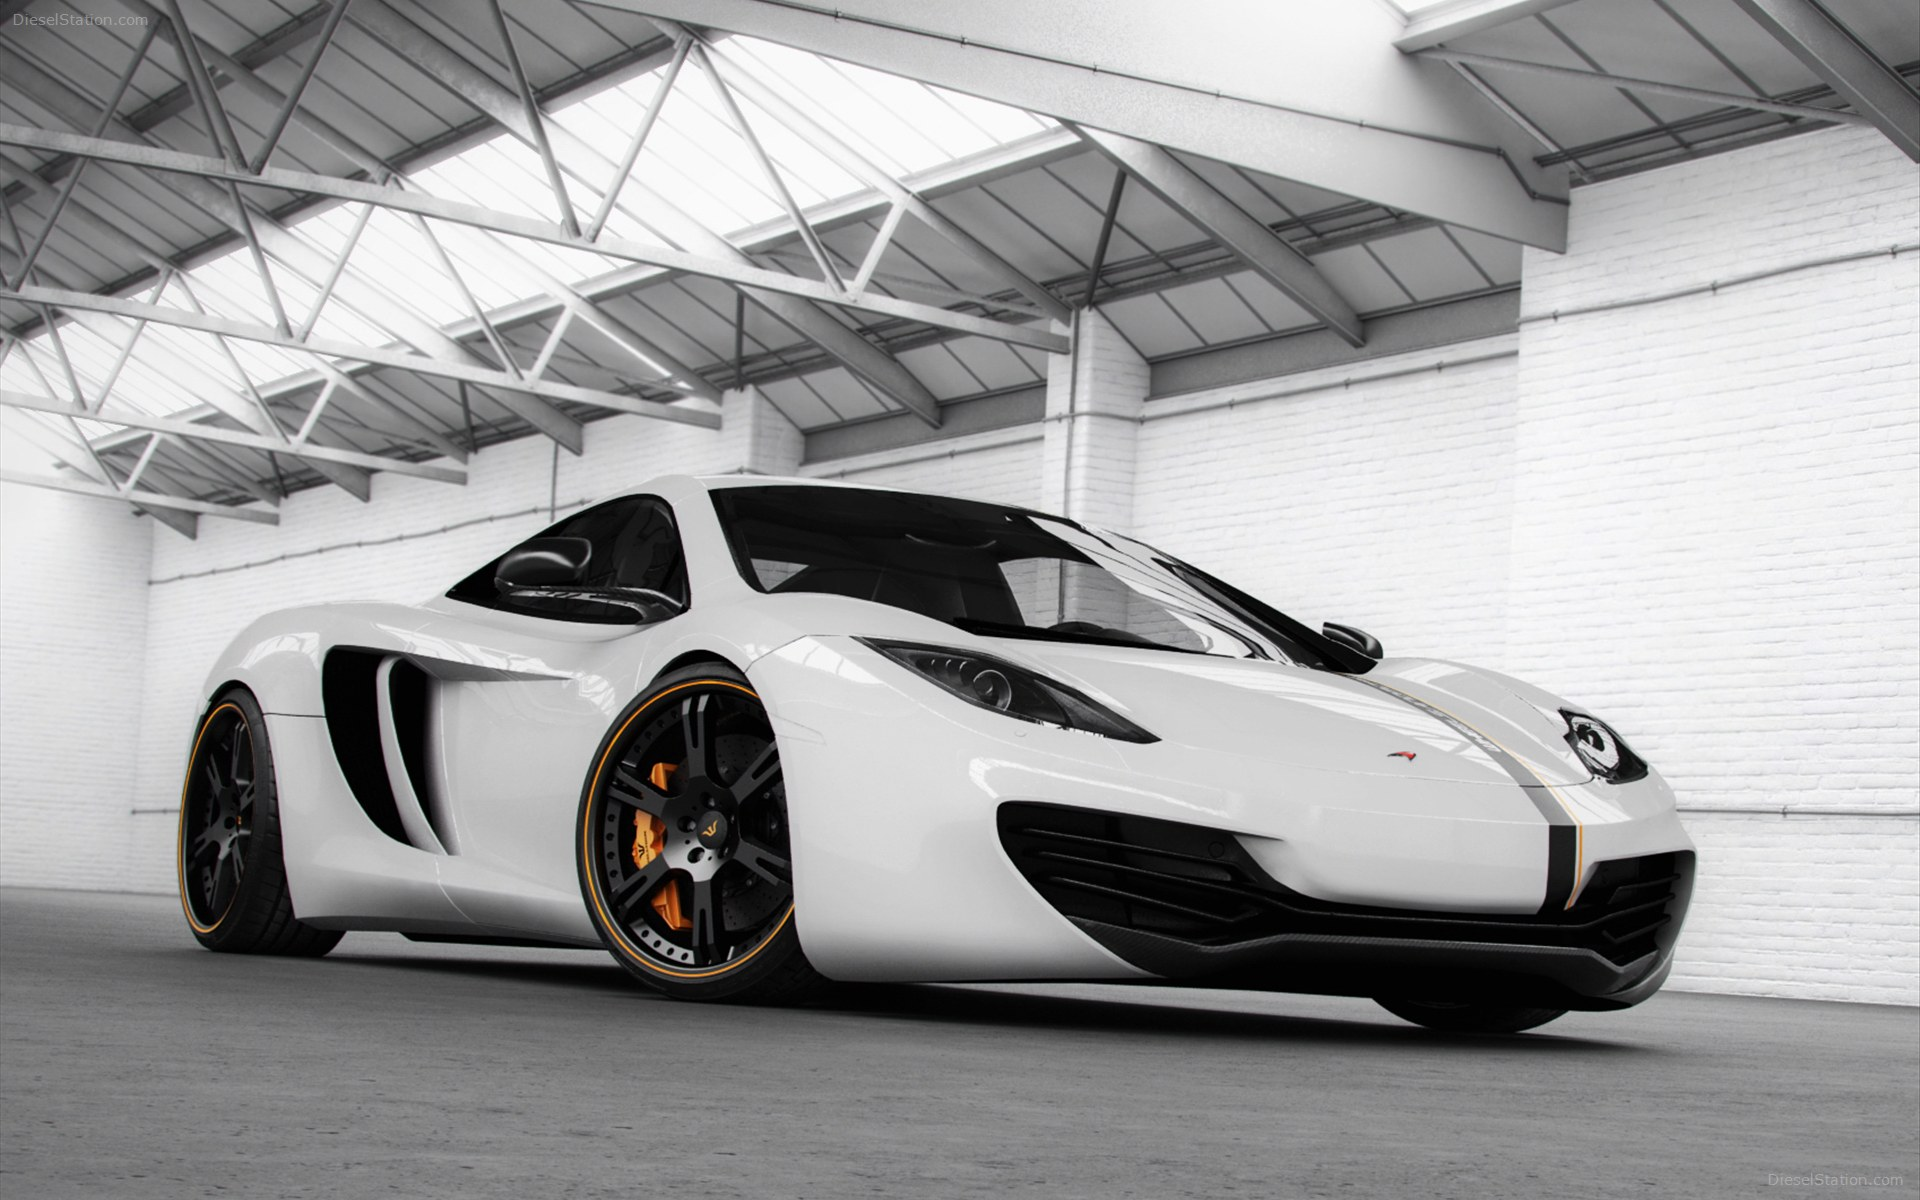 mclaren mp4 12c performance wallpaper hd car wallpapers id 2523. Black Bedroom Furniture Sets. Home Design Ideas